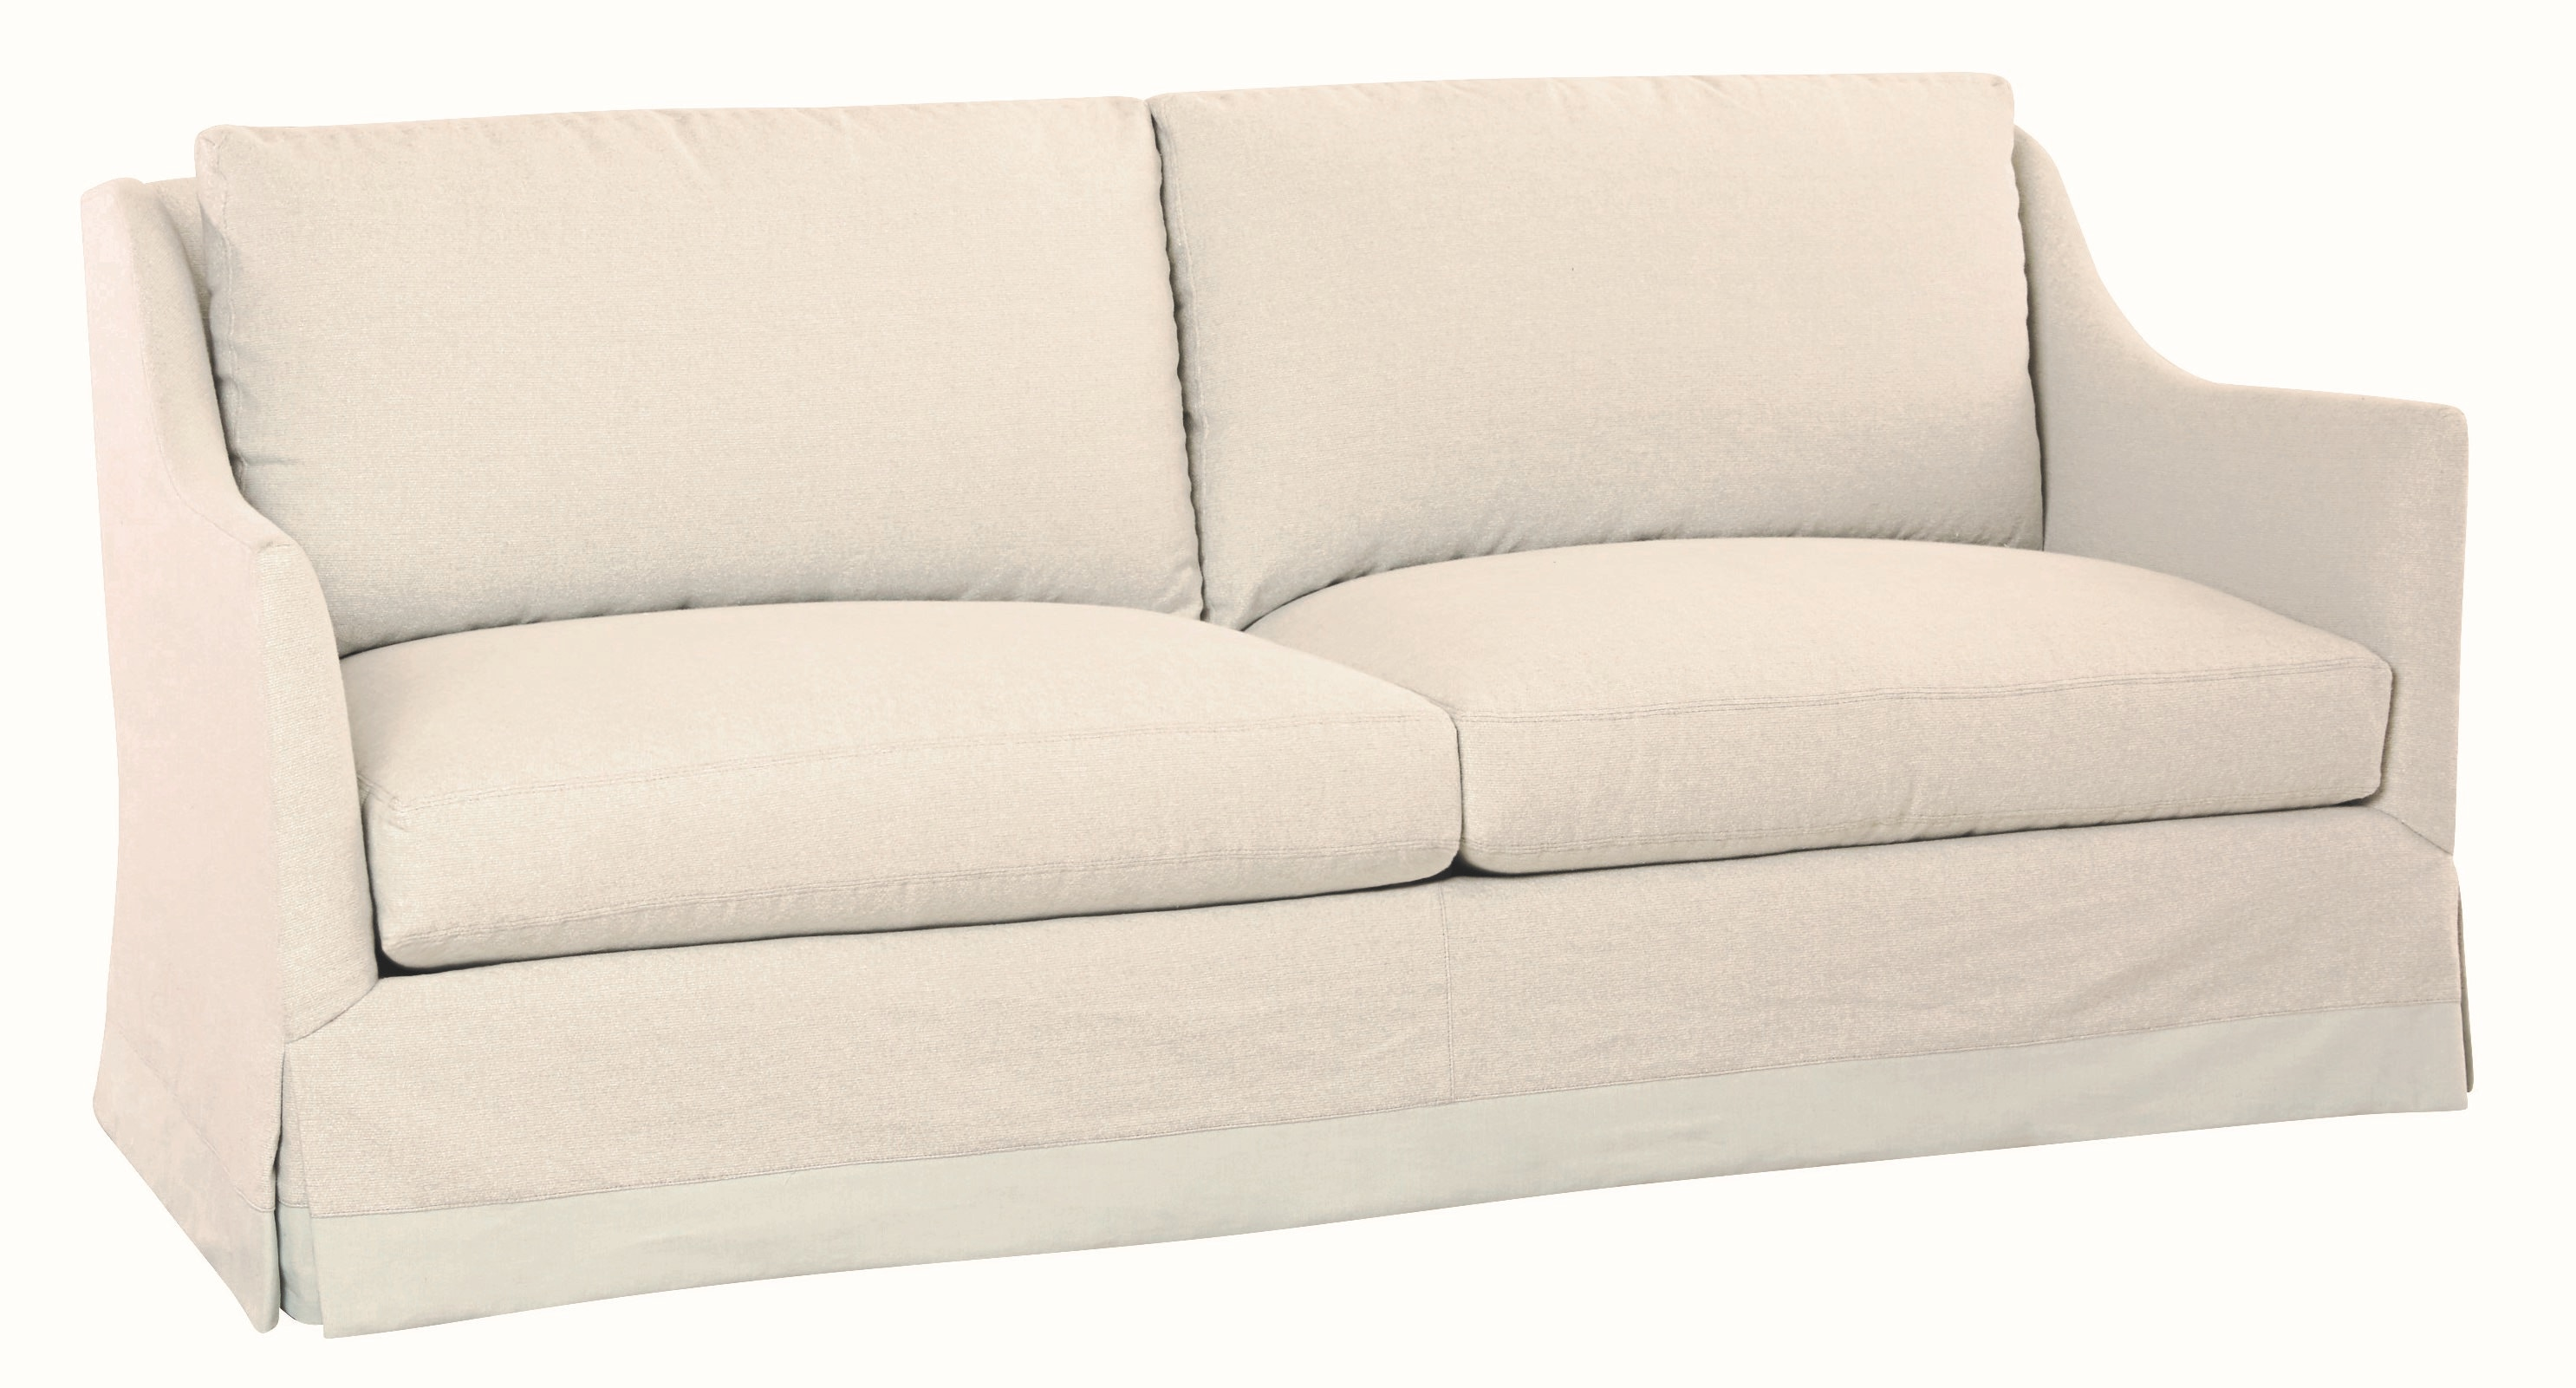 Lee Industries Living Room Apartment Sofa 3821 11 At Exotic Home Coastal  Outlet